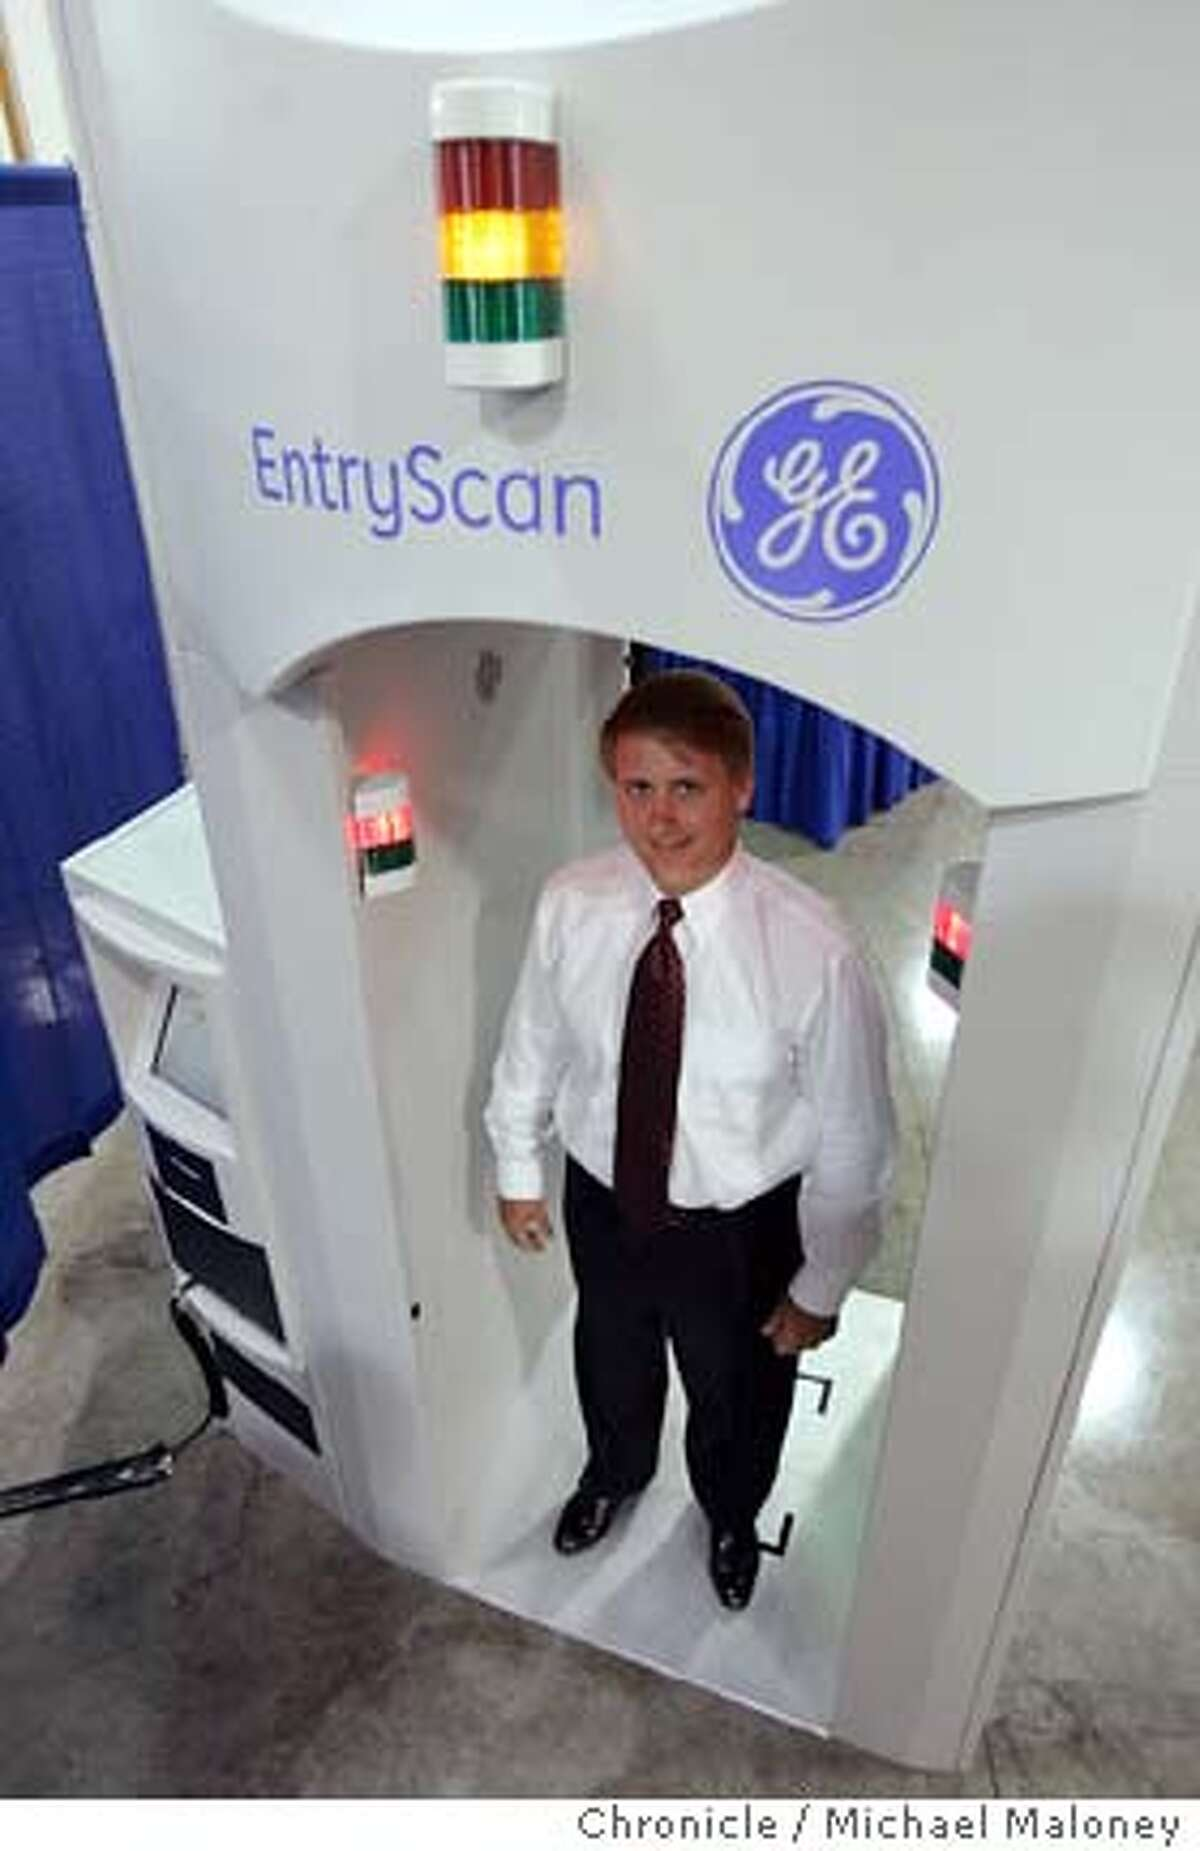 Dennis Cooke, president, GE Homeland Protection, demonstrates the company's non-invasive, walk-through security portal for high-traffic-volume checkpoint security applications, the EntryScan. The EntryScan is designed for use in airport, mass transit and large building and public-venue settings, among others. The EntryScan uses gentle puffs of air and patented technology to rapidly analyze microscopic particles for a variety of explosive materials and narcotics. Transit agencies around the Bay Area are grappling with how to increase security without taking the rapid out of transit. There are some newer technologies being developed by GE Infrastructure Security in Newark that offer faster screening. One is the EntryScan which blows a puff of air at a person walking through and measures that for explosive residue. Another is called the Itemiser FX which measures for explosive residue through a finger print. Photo by Michael Maloney / San Francisco Chronicle